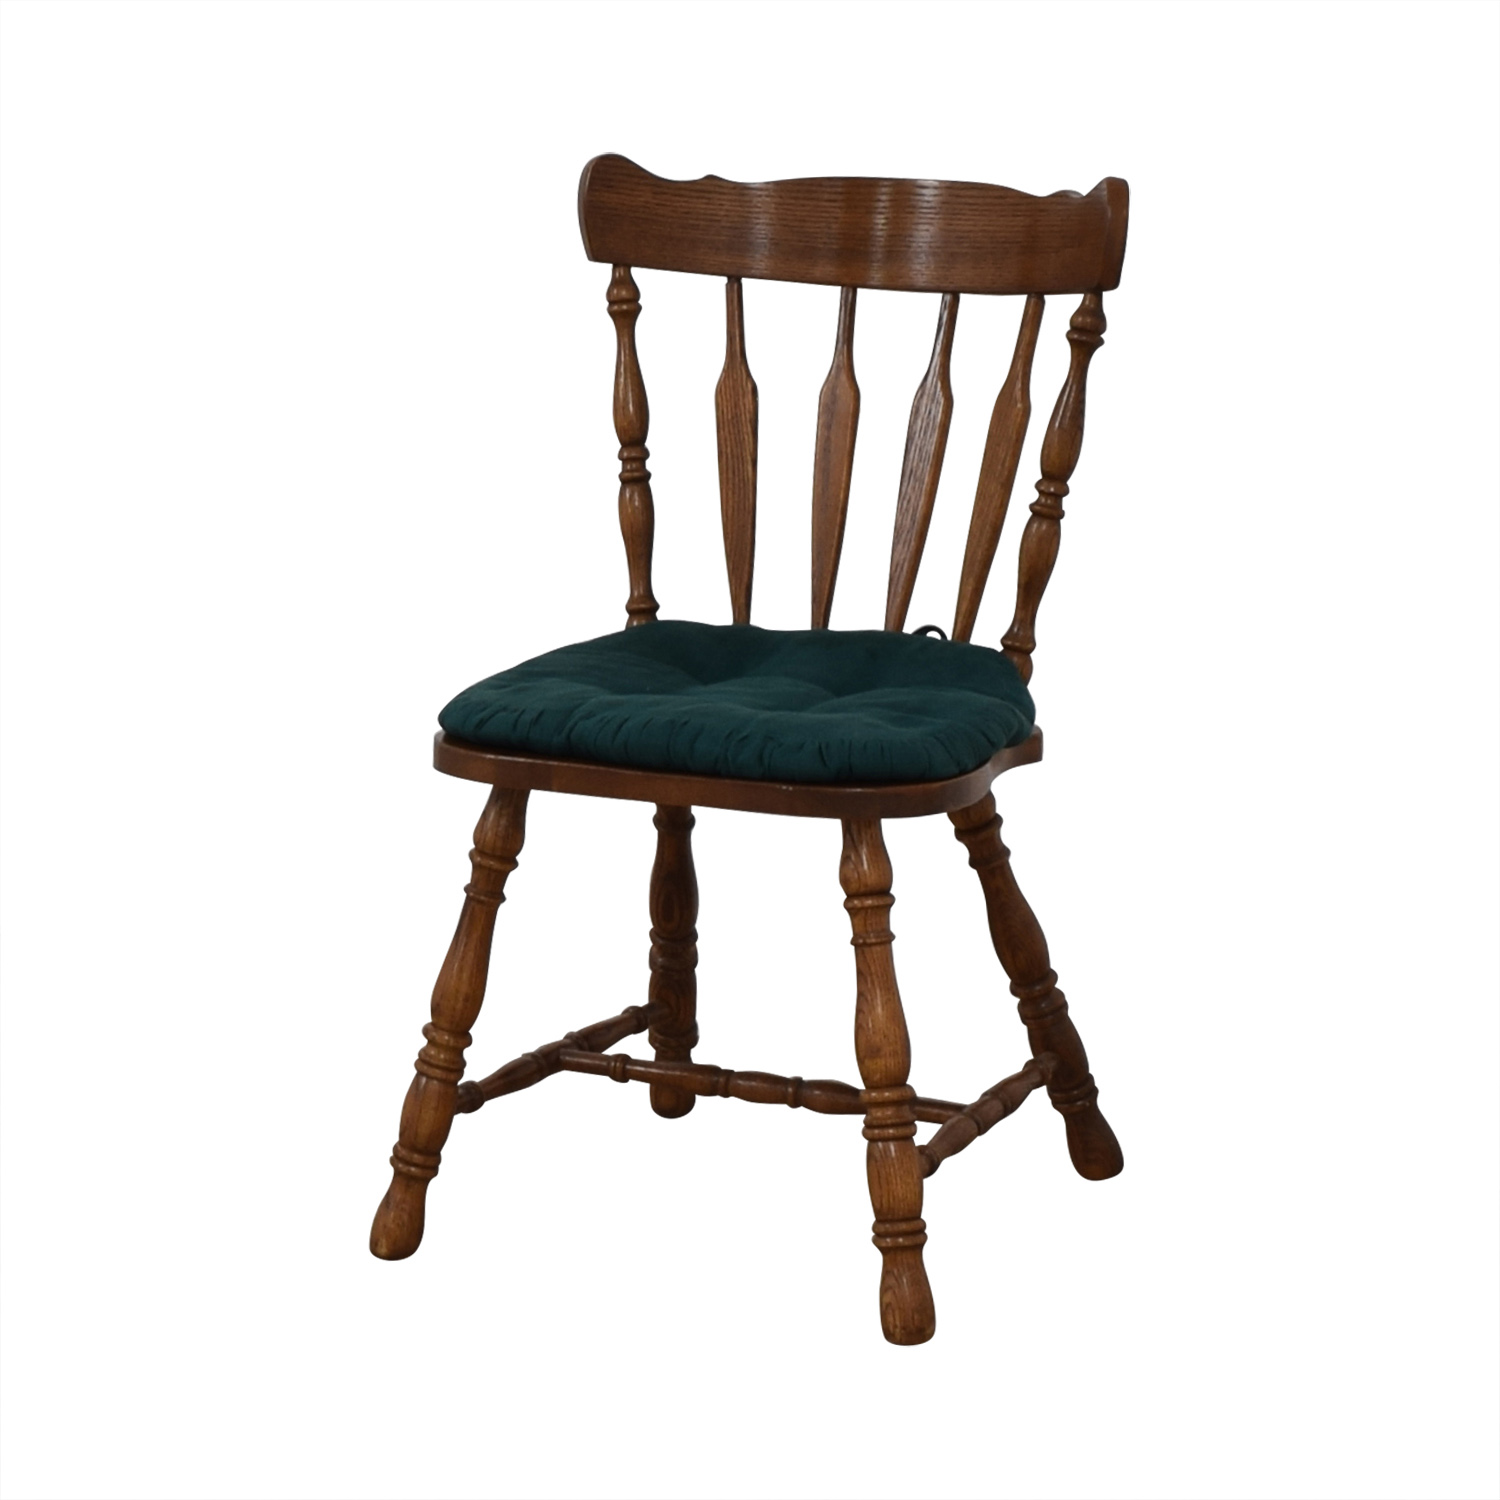 Wood Chair with Teal Cushion / Tables